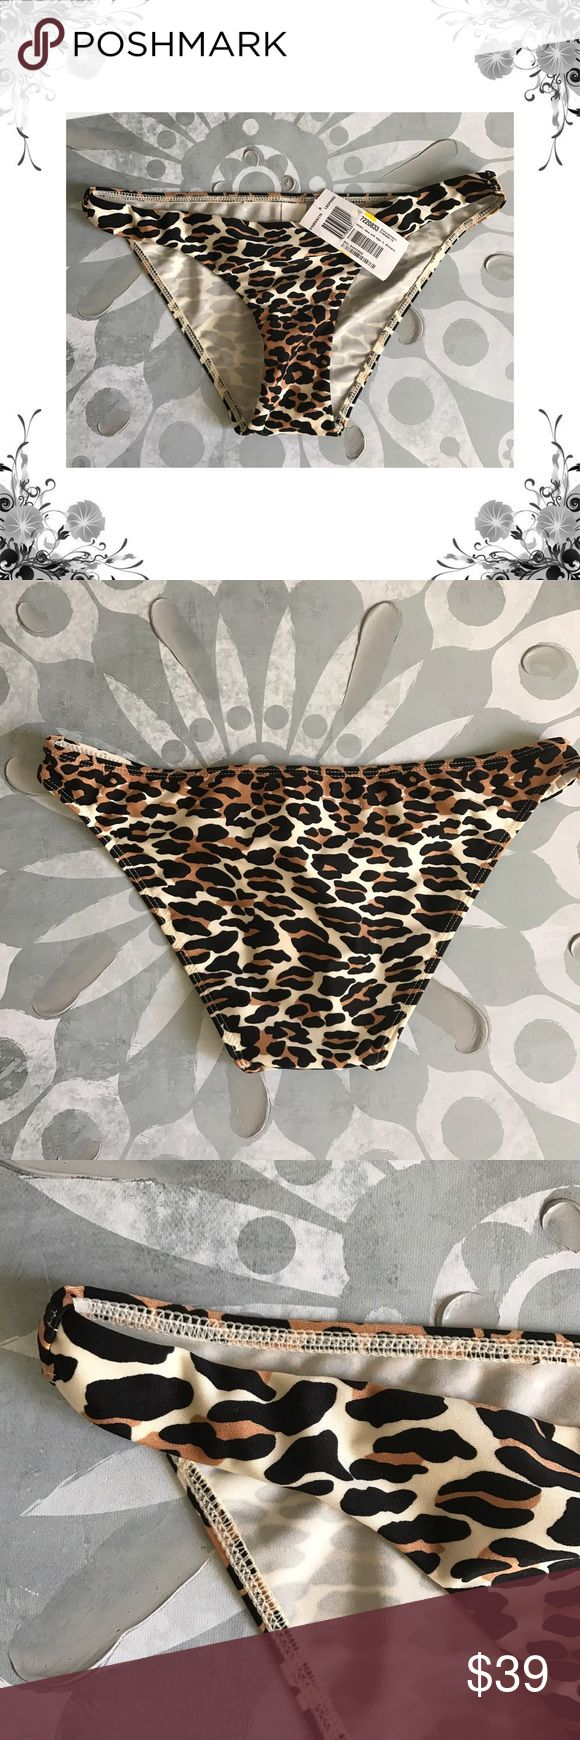 Zimmermann Animal Print Bikini Bottom Bottom only. Manufacturer Color is Leopard. Material is 80% Polyester/20% Elastane. Low-rise hipster cut. Full seat coverage. Bundle for discounts! Thank you for shopping my closet! Bin 28 Zimmermann Swim Bikinis